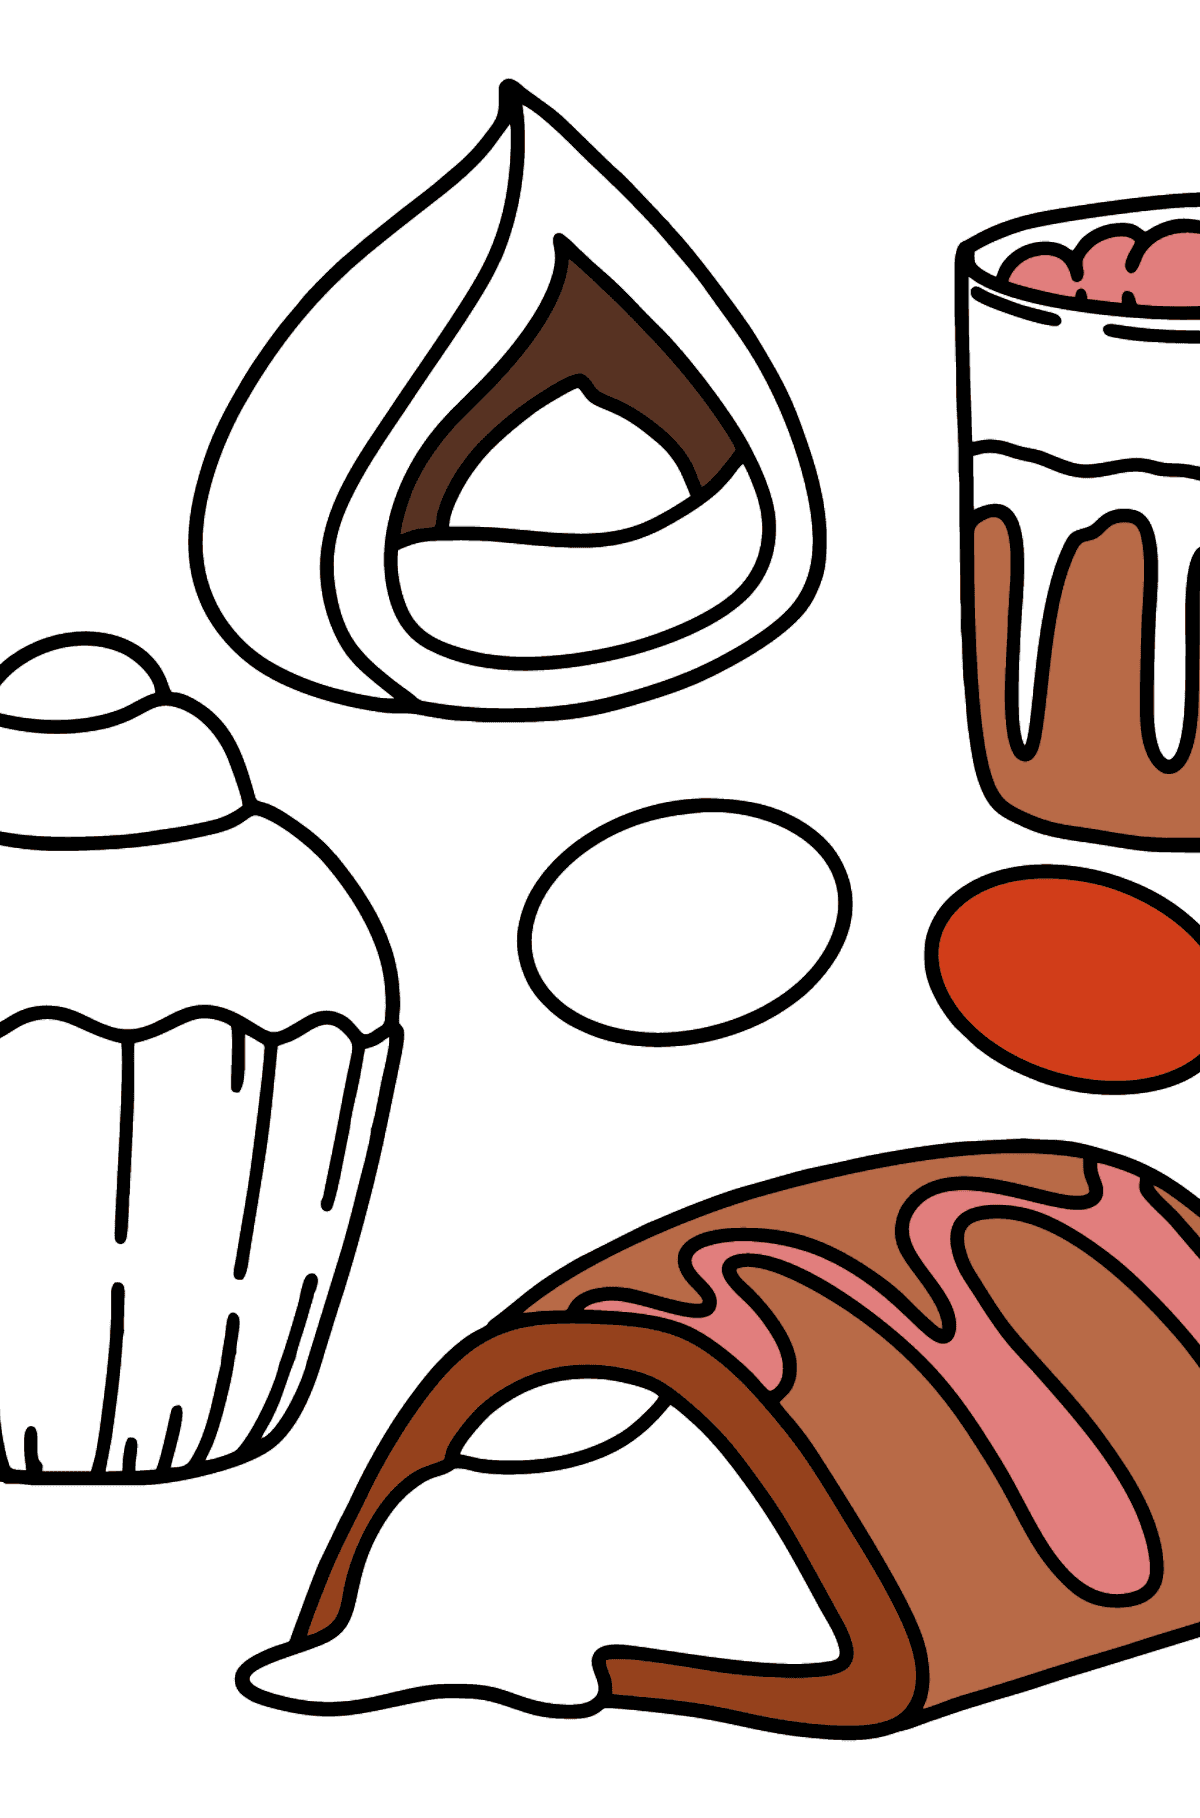 Yummy coloring page - Coloring Pages for Kids